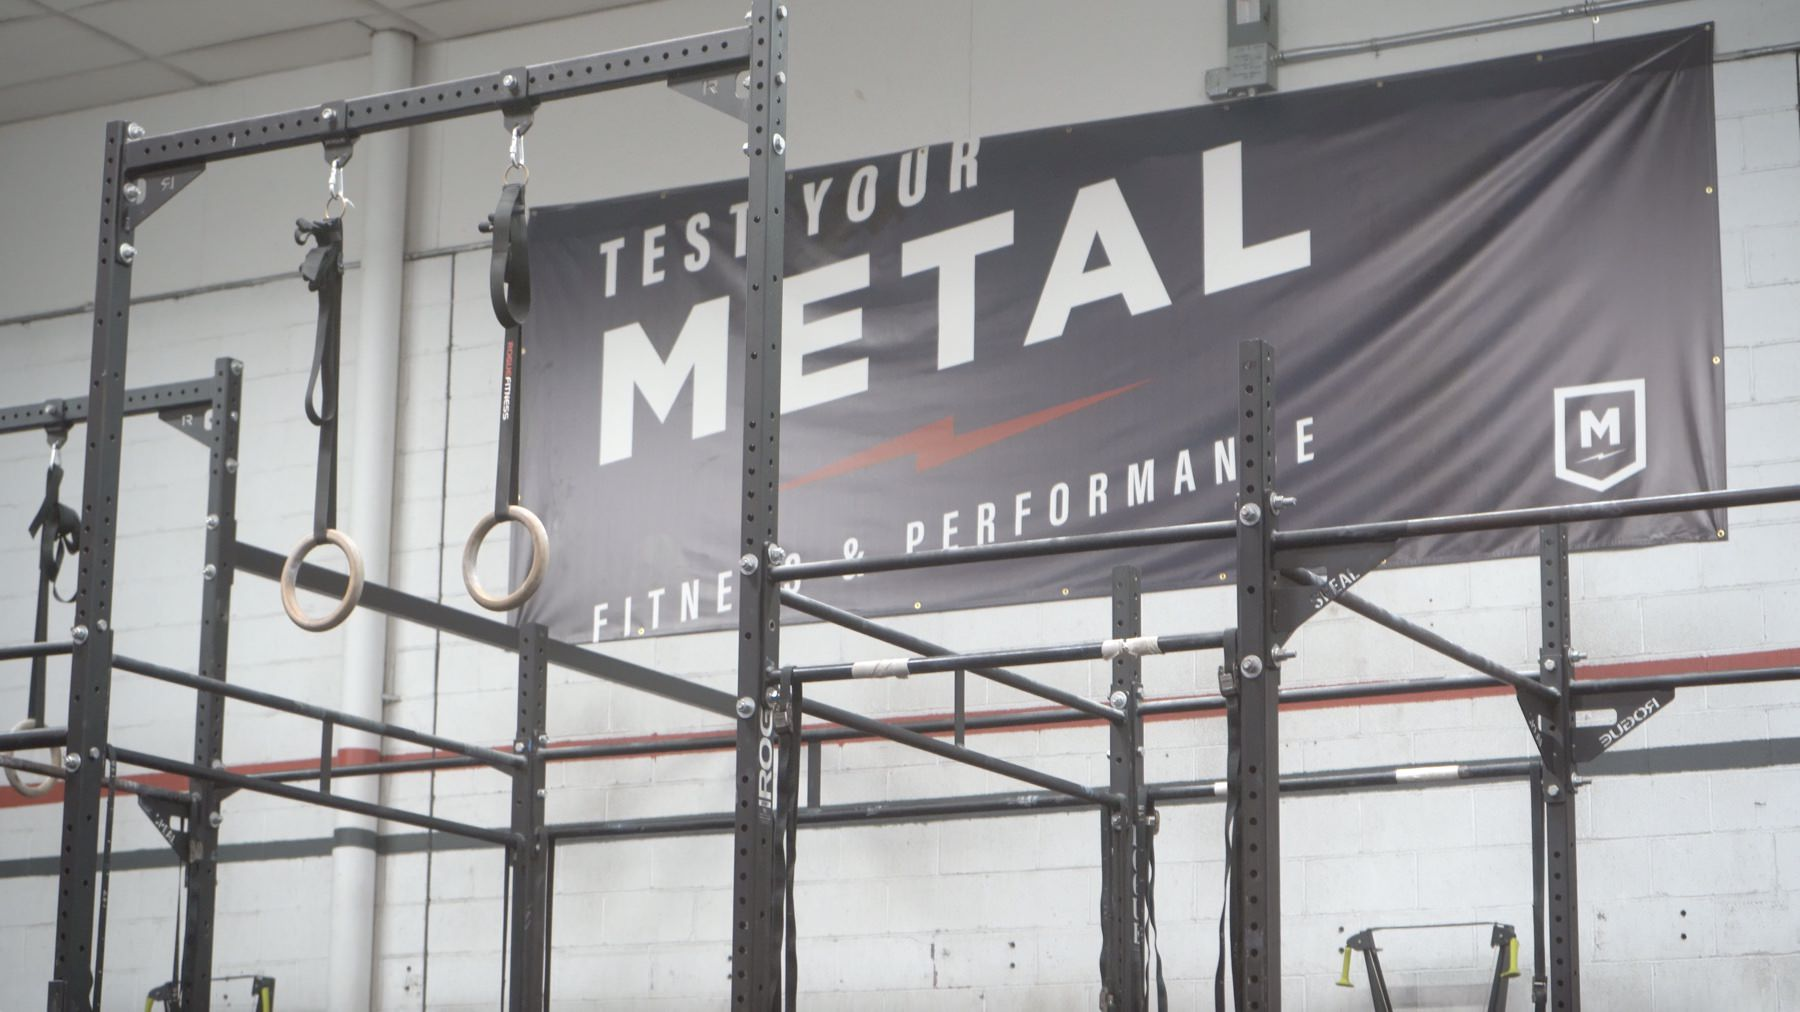 Test Your Metal Sports Performance Program